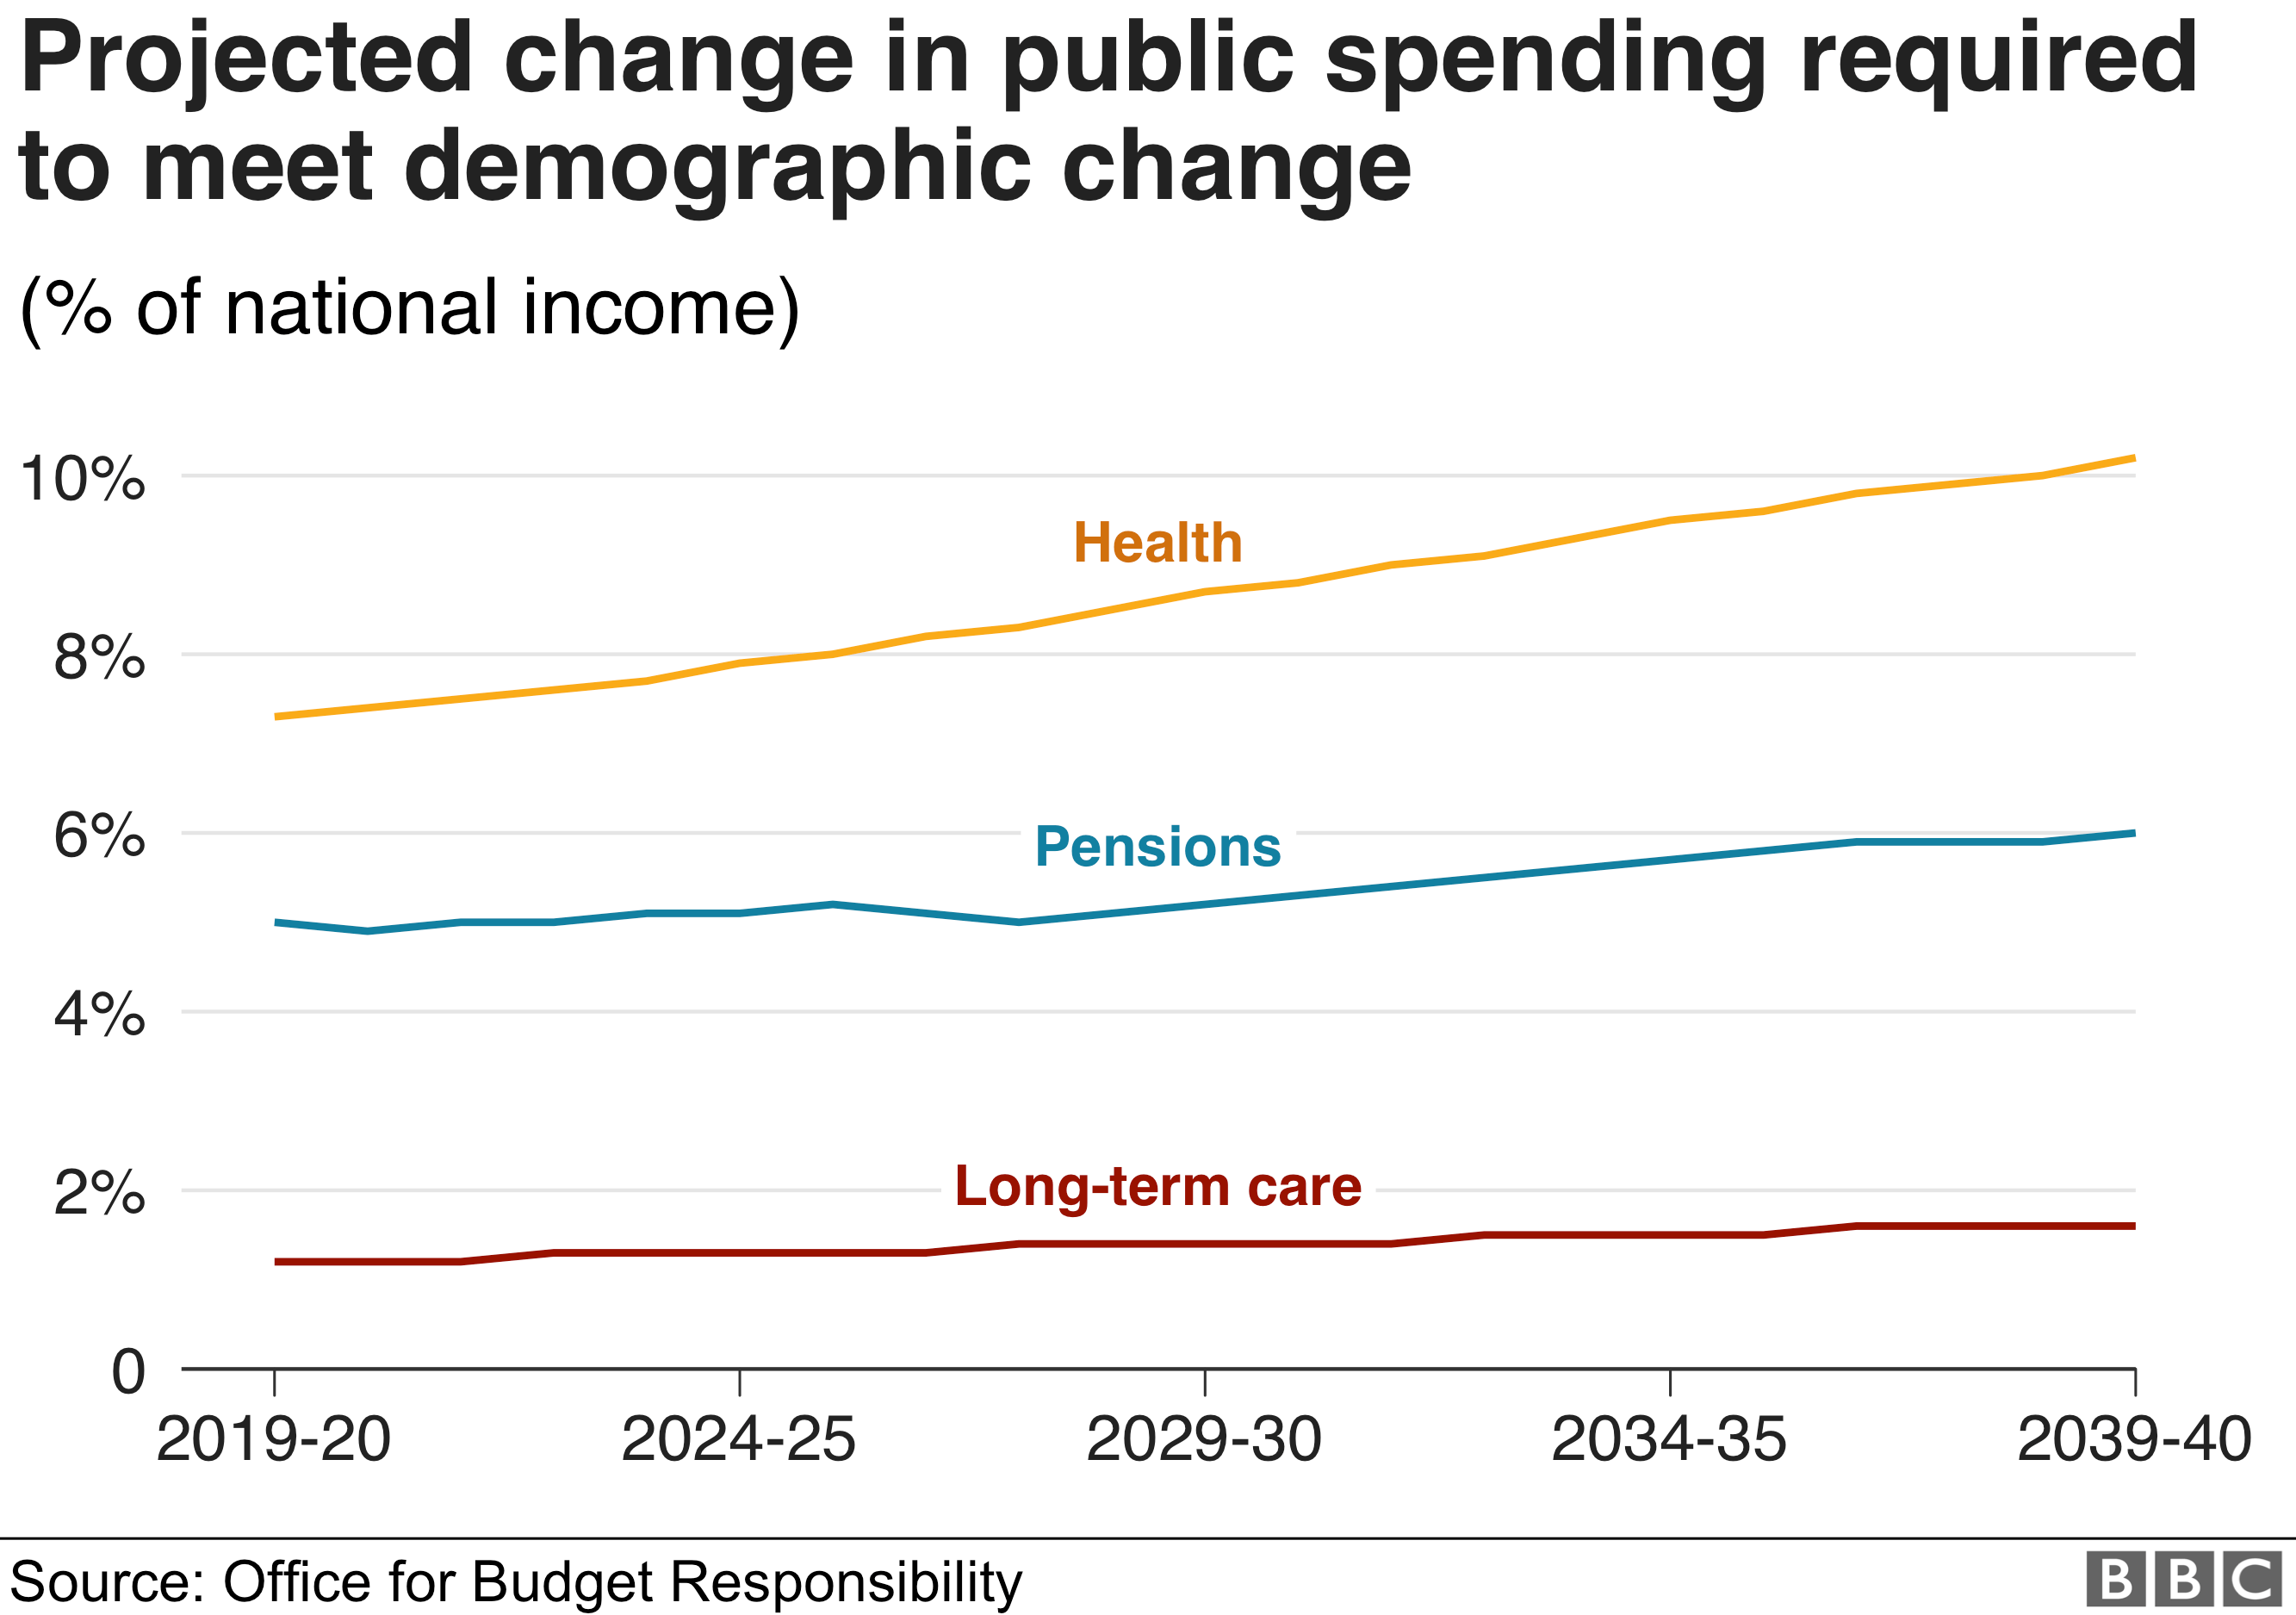 Projected change in public spending required to meet demographic change (as a percentage of national income). Shows steady long term rises in the amounts needed for health, pensions and long-term care.